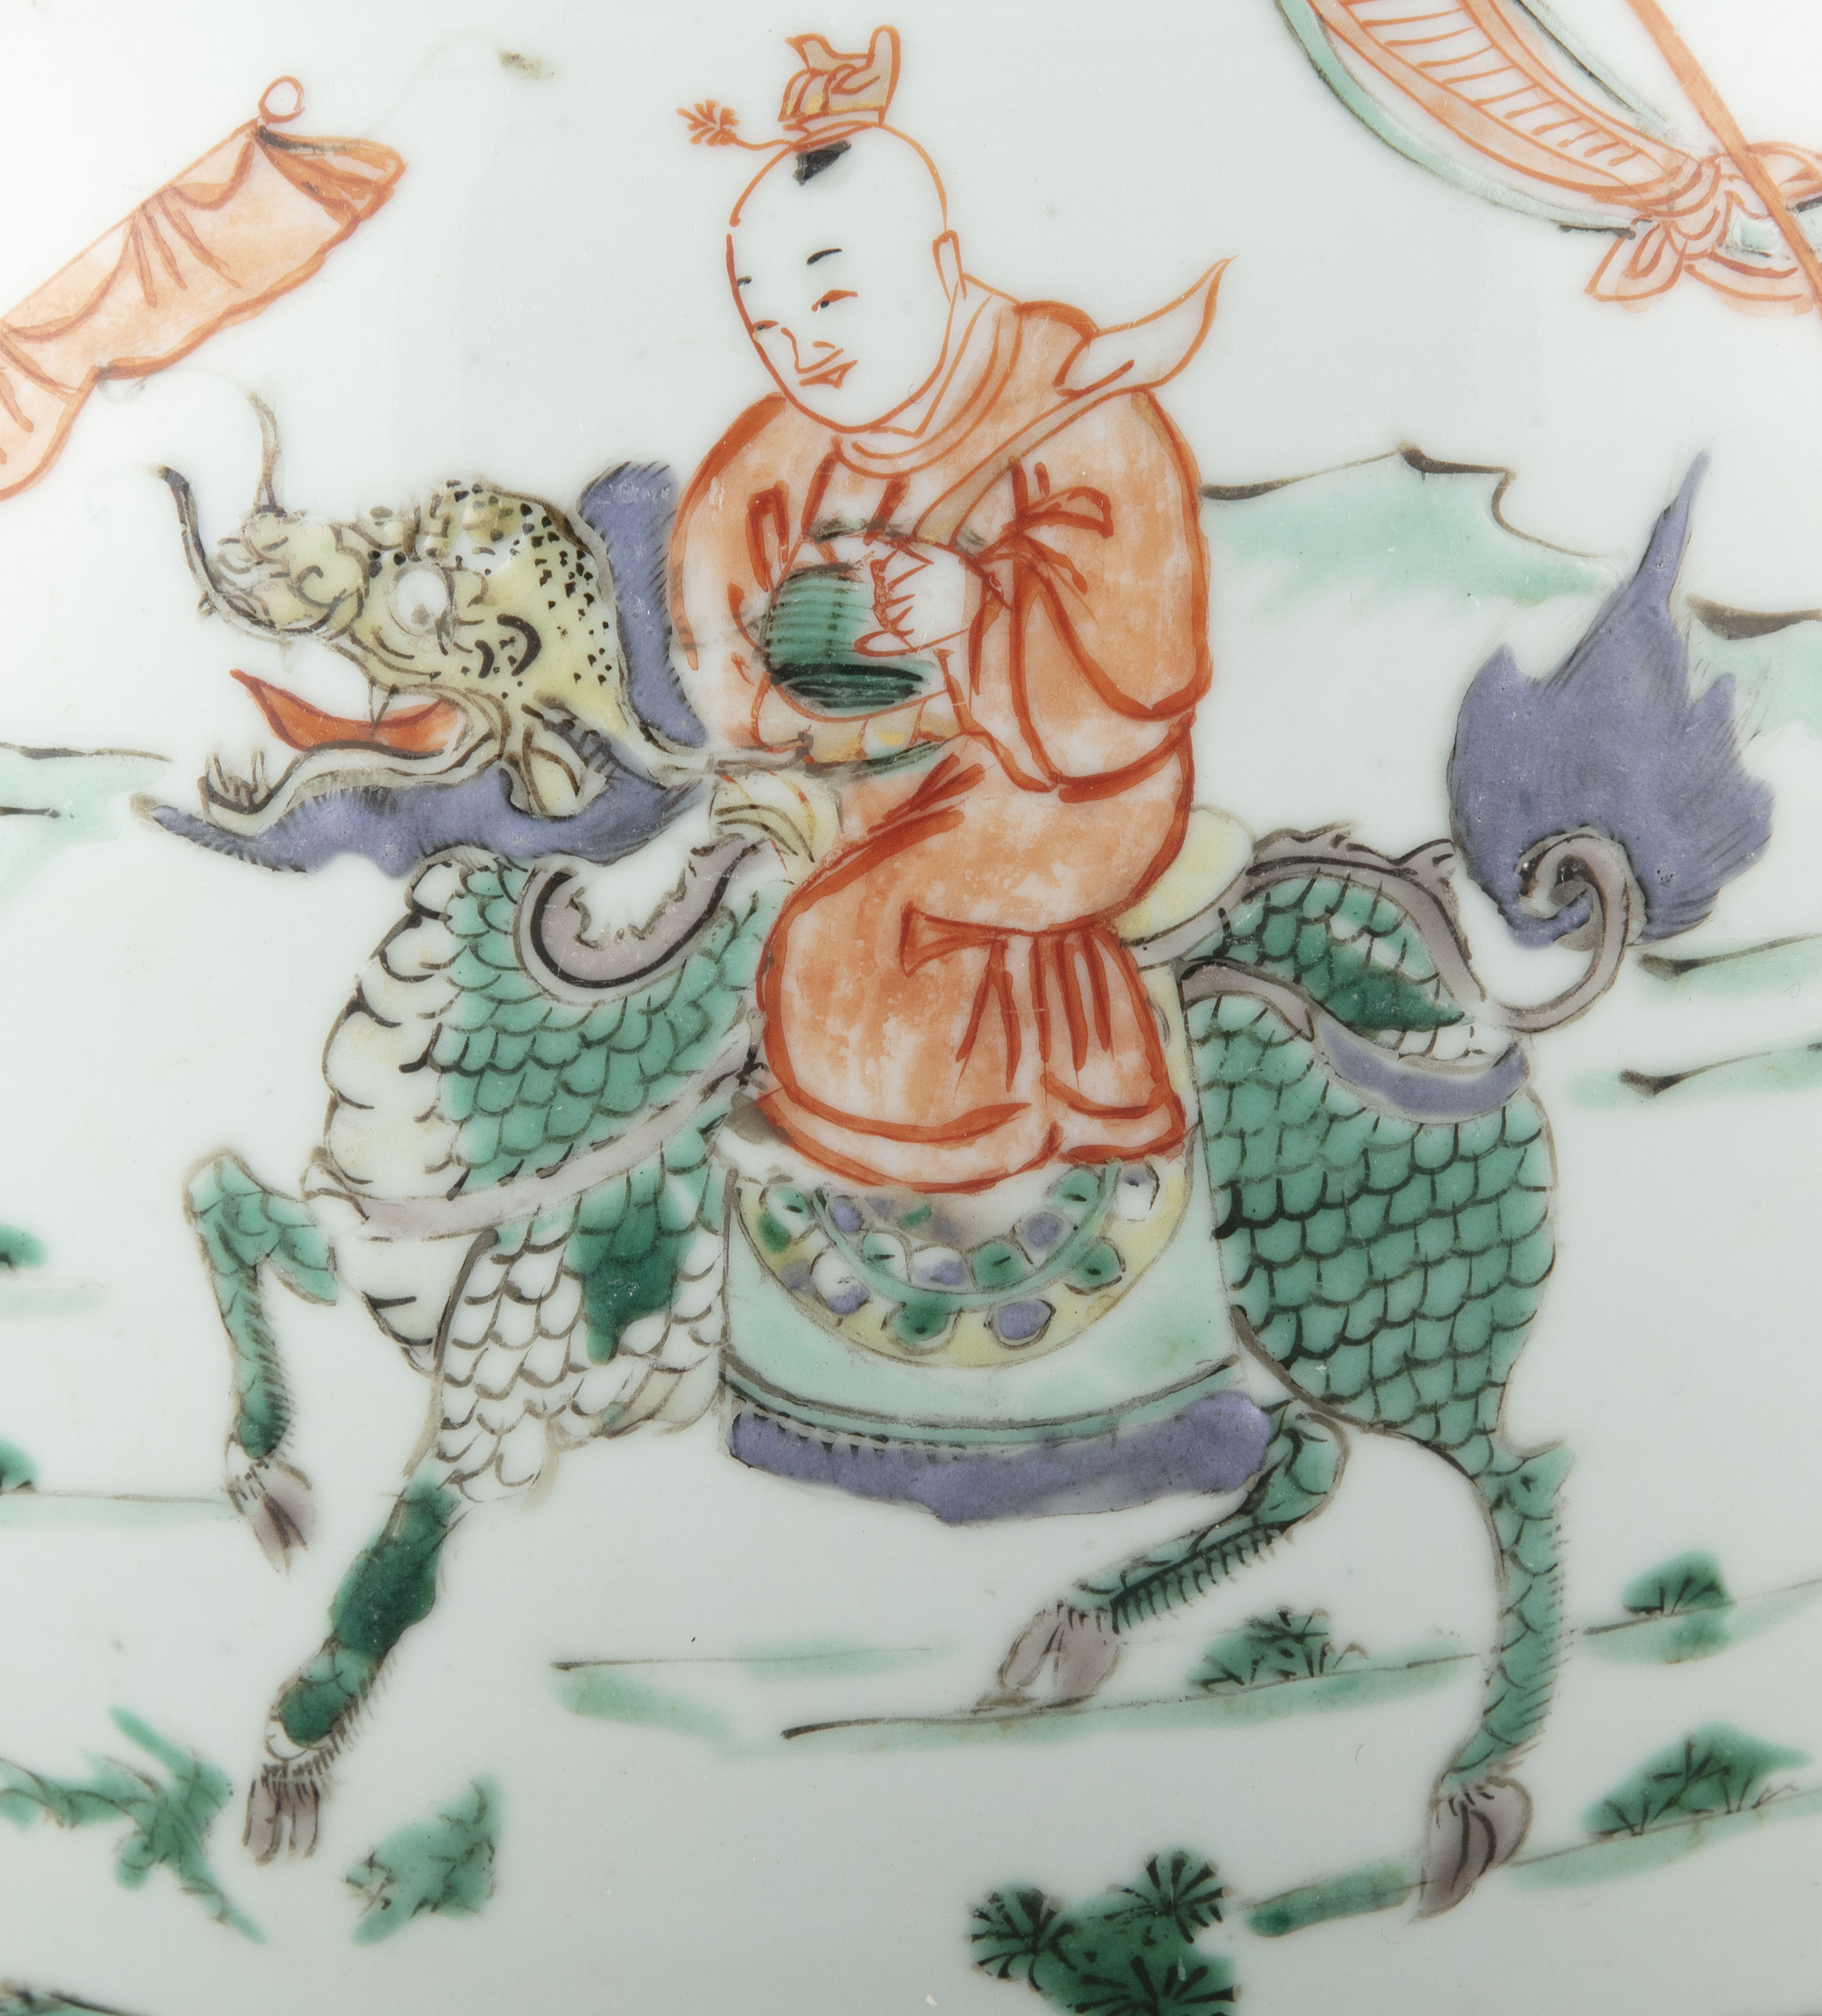 A FAMILLE VERTE 'BOY AND QILIN' PORCELAIN GINGER JAR China, Qing Dynasty, Kangxi period Adorned in - Image 3 of 20